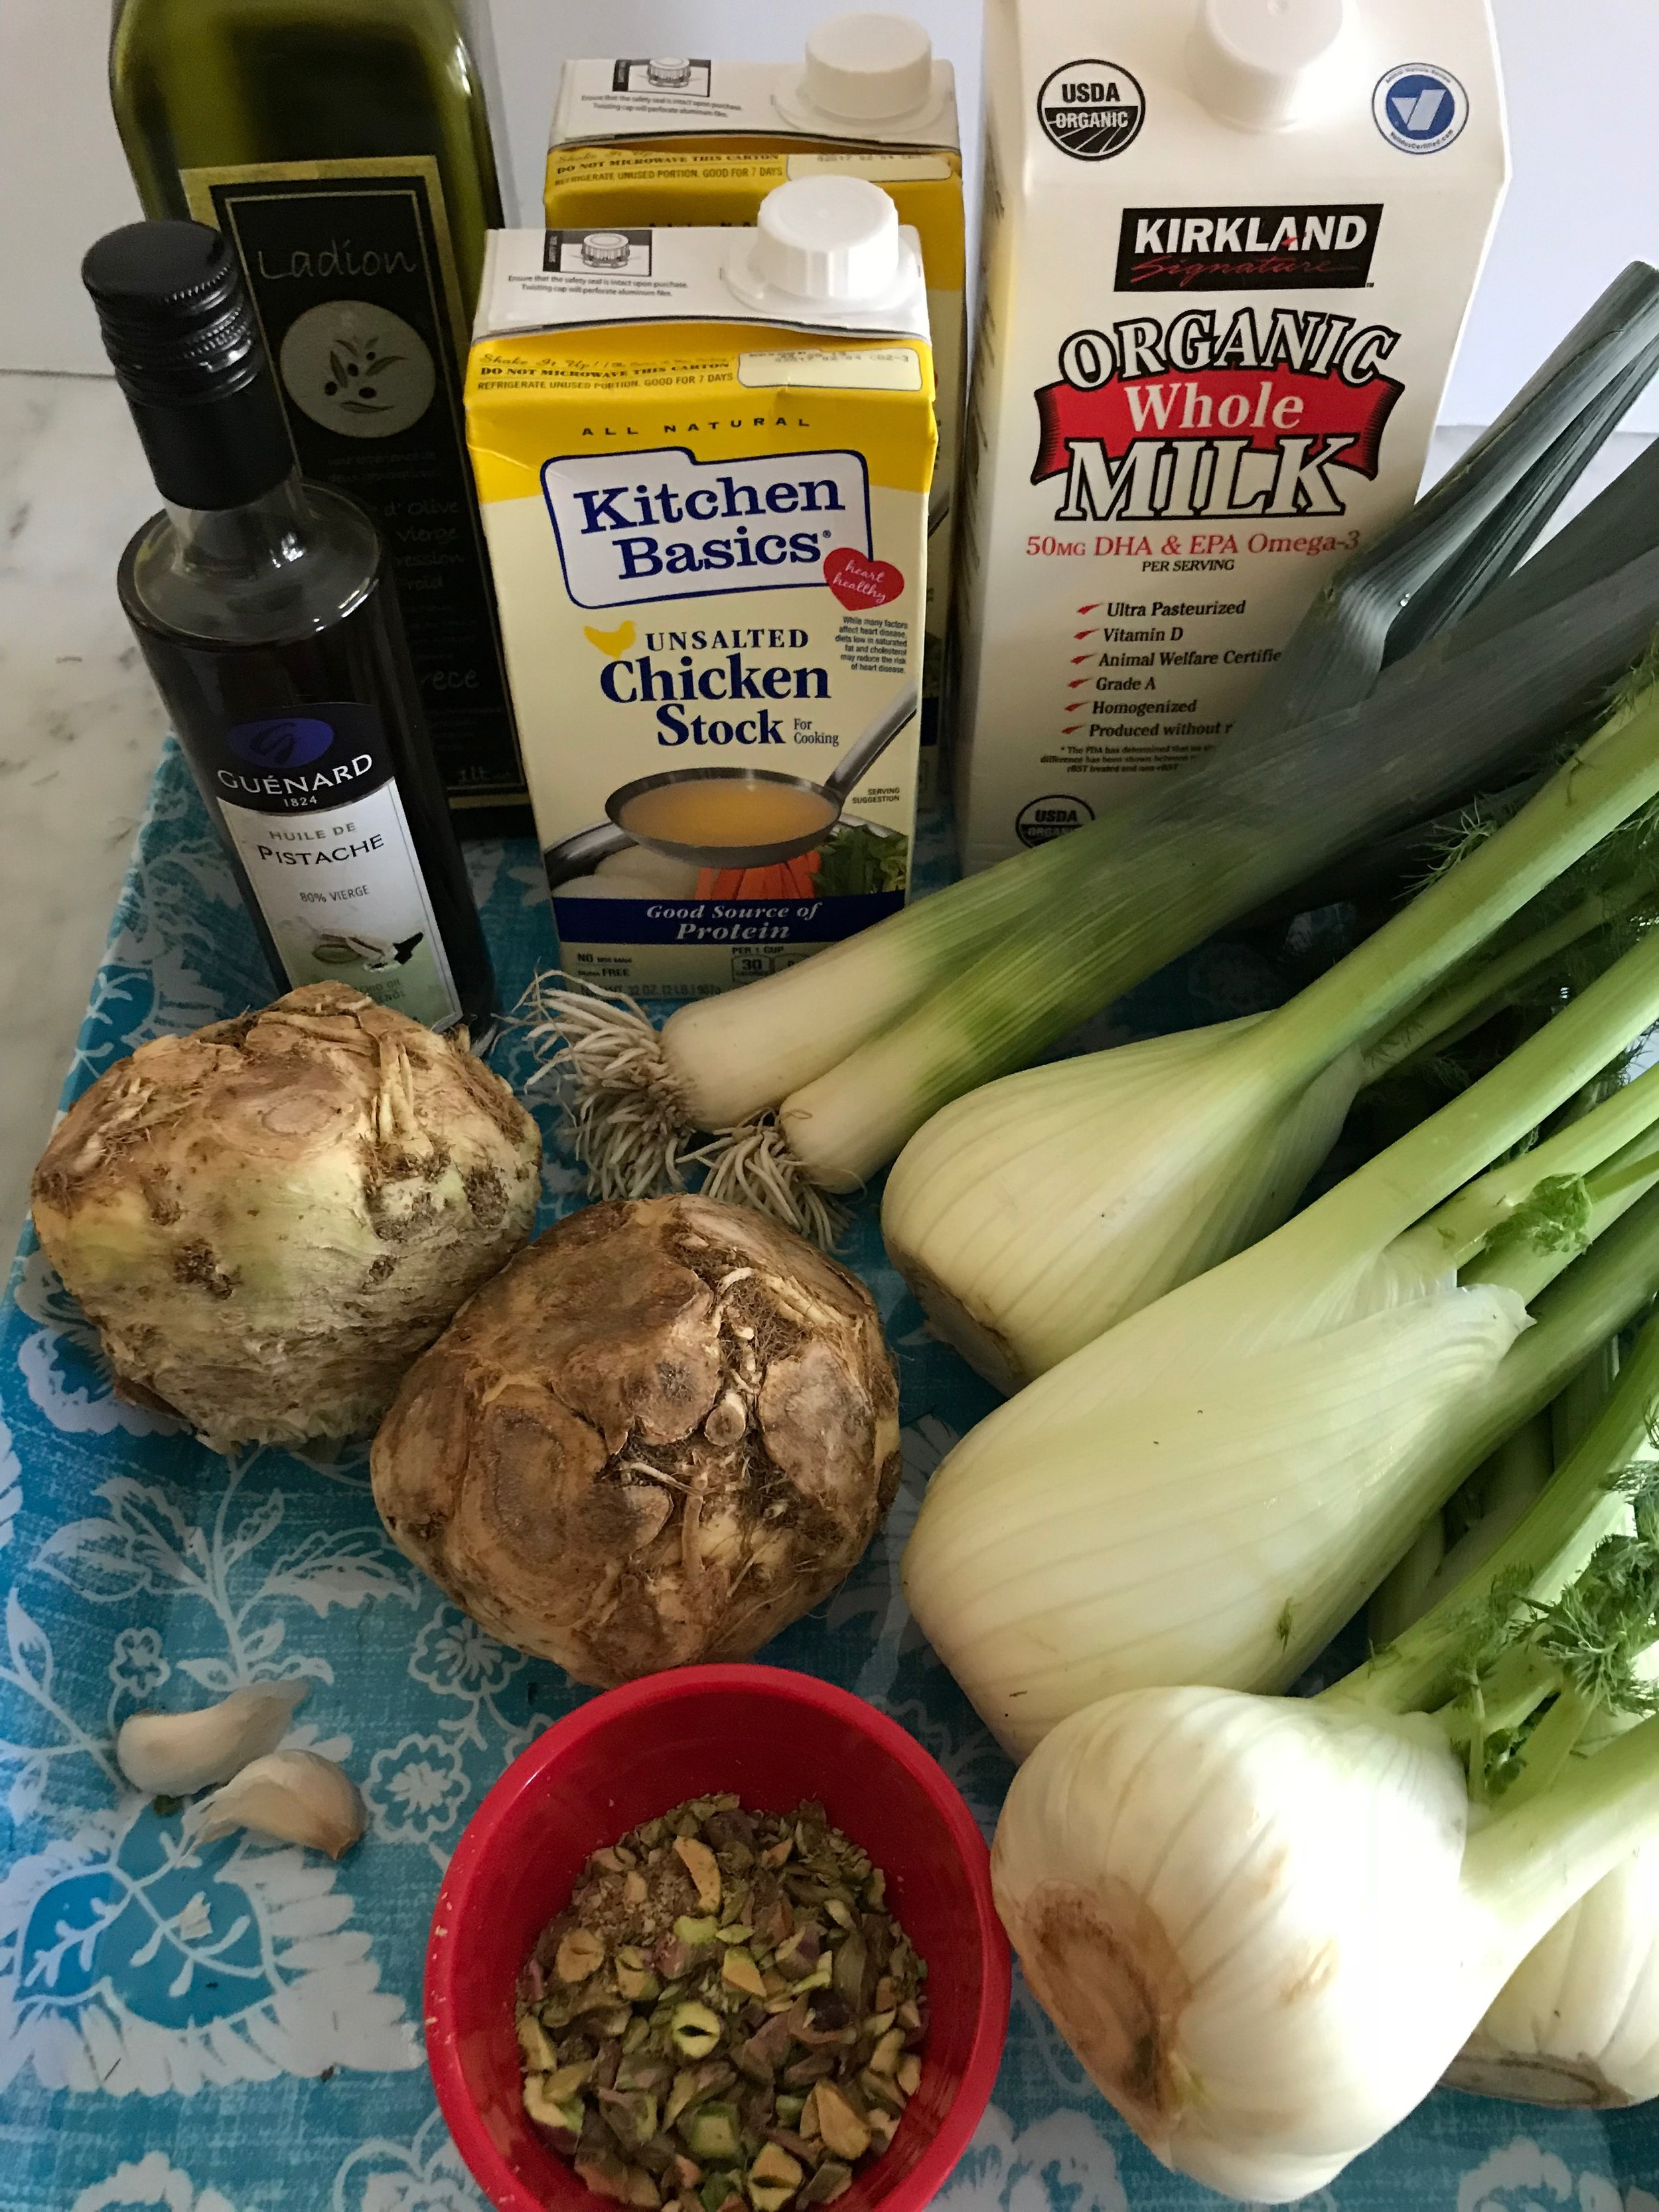 Ingredients - 2 leeks2 large celery roots4 medium heads of fennel2T olive oil3 cloves garlic 7 cups chicken or vegetable stock2 cups milk Salt & pepper½ cup chopped pistachios5T olive or pistachio oil